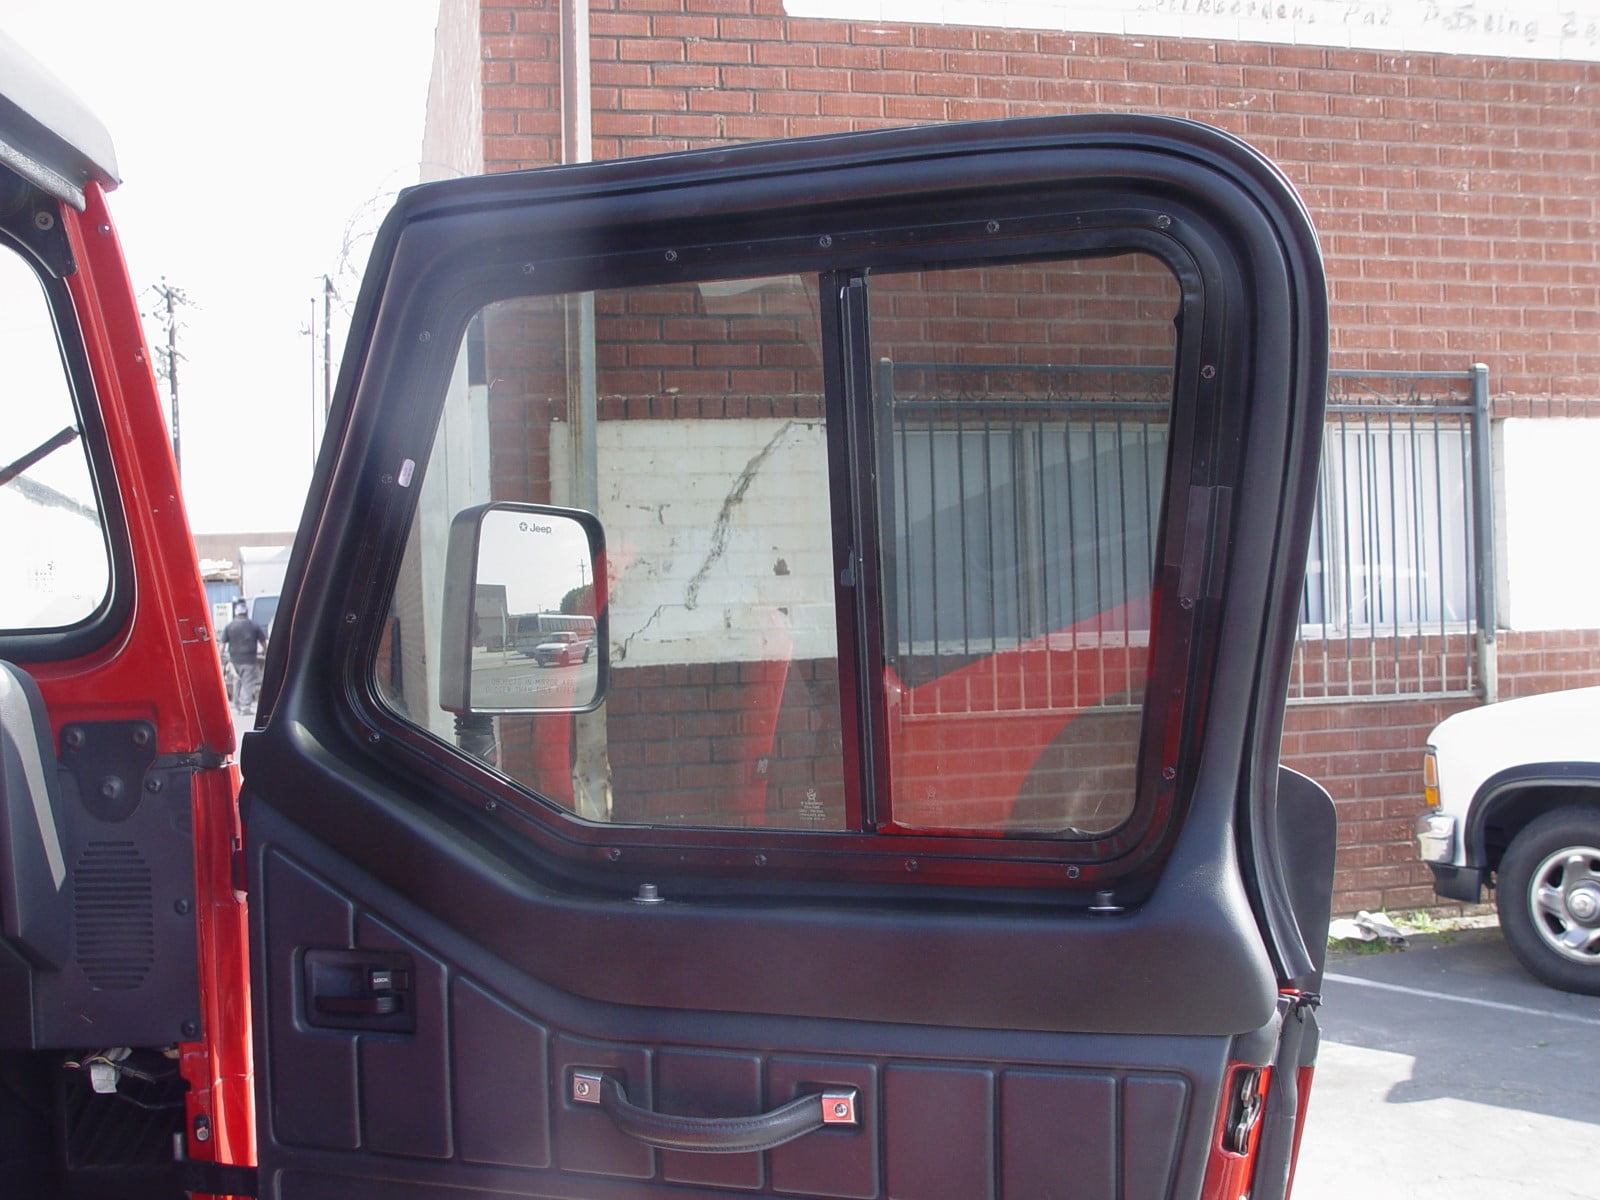 Jeep Half Doors Are Available For All Hard Or Soft Top Convertible Jeep Models